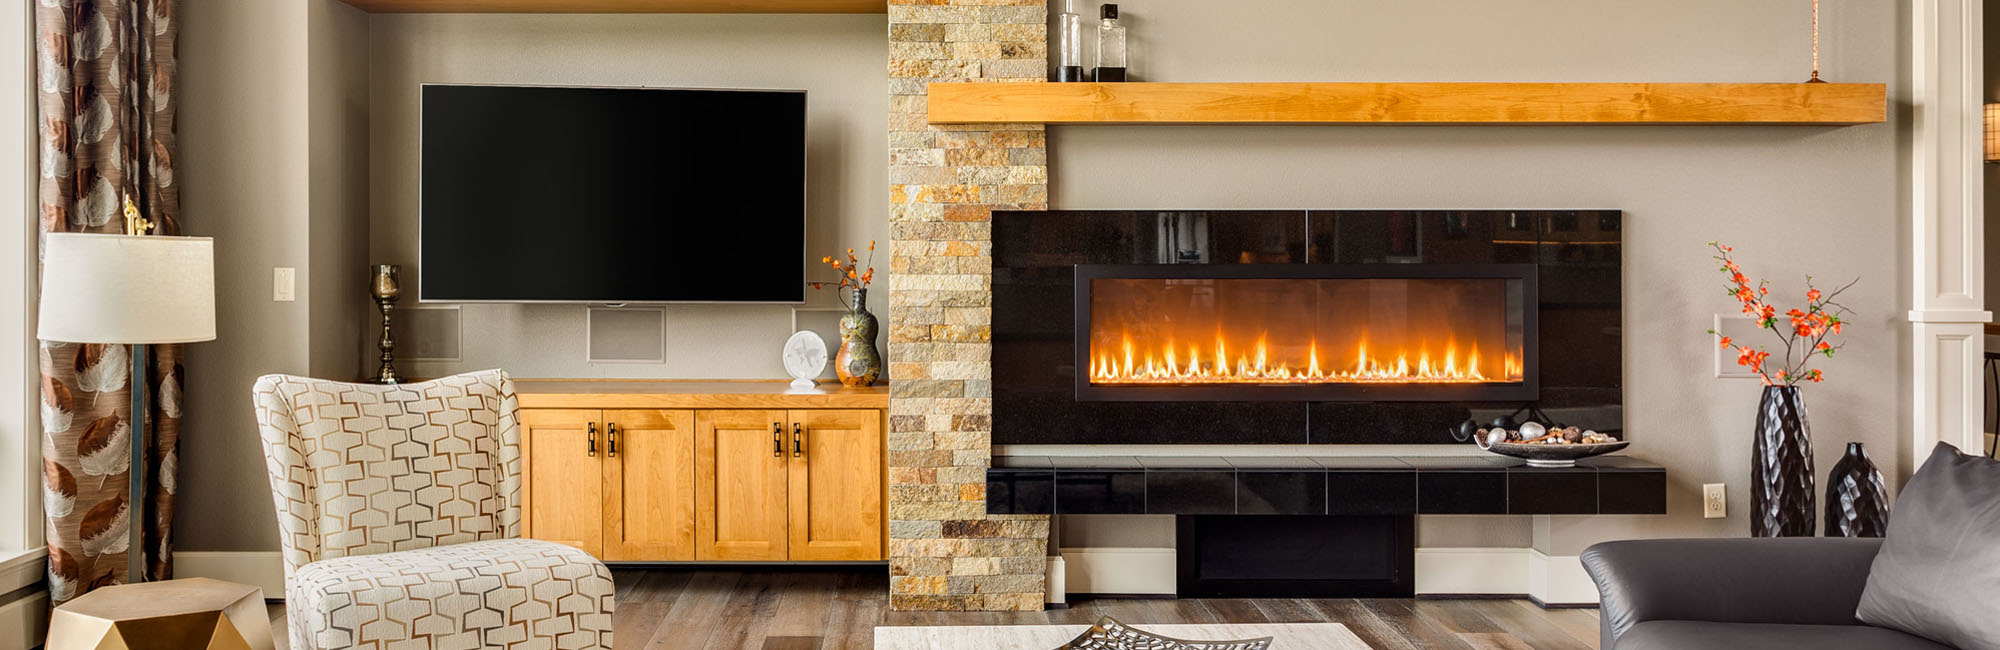 roaring fireplace